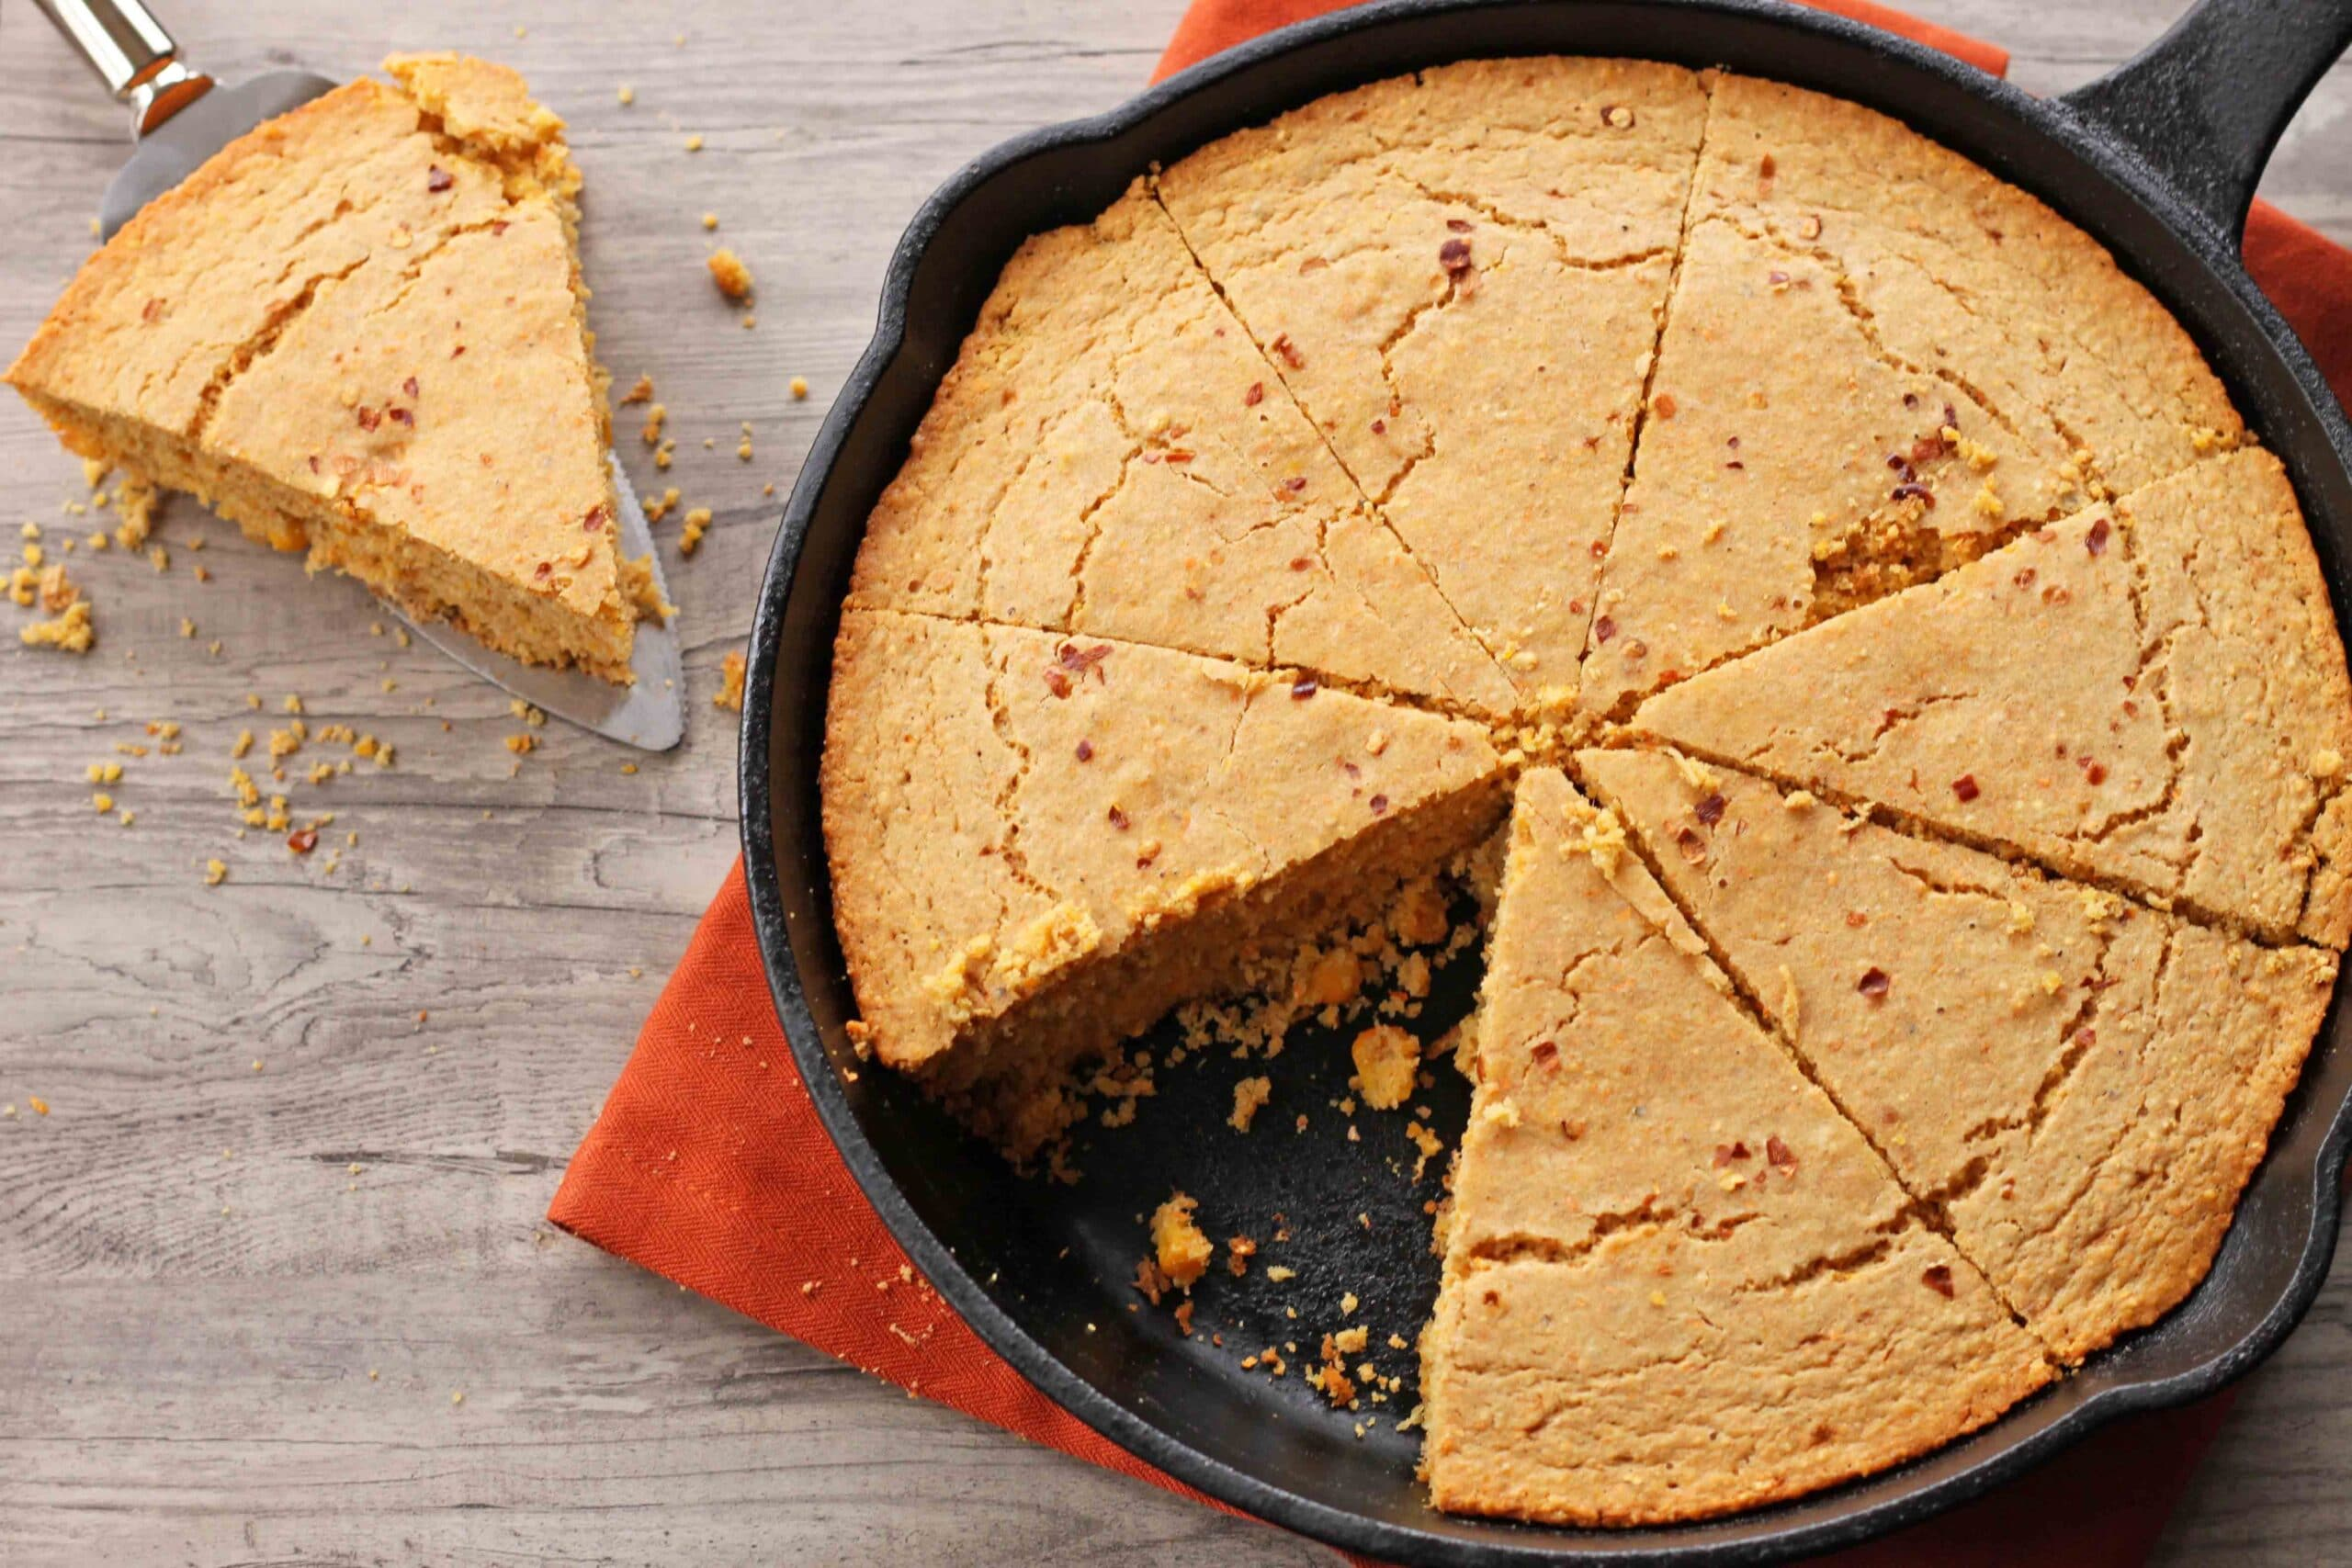 Gluten-free Cornbread from Healthy Homemade Soups and Sandwiches